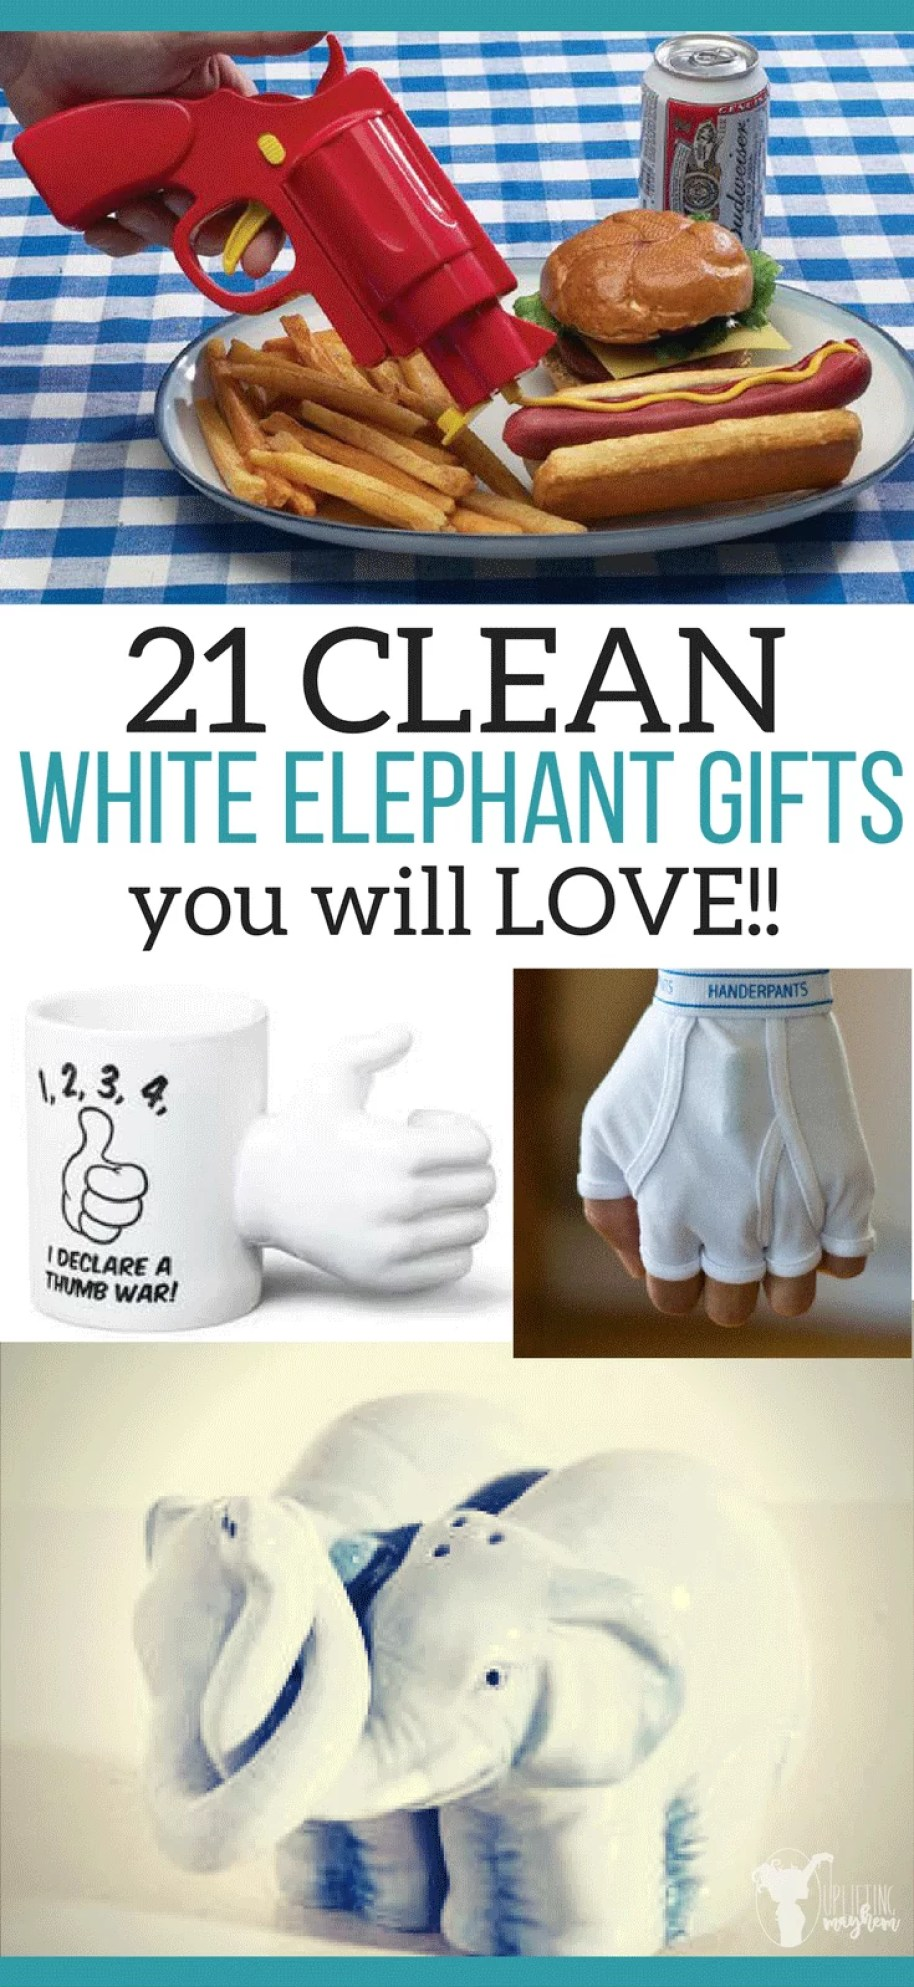 21 Clean White Elephant Gifts You Will LOVE!